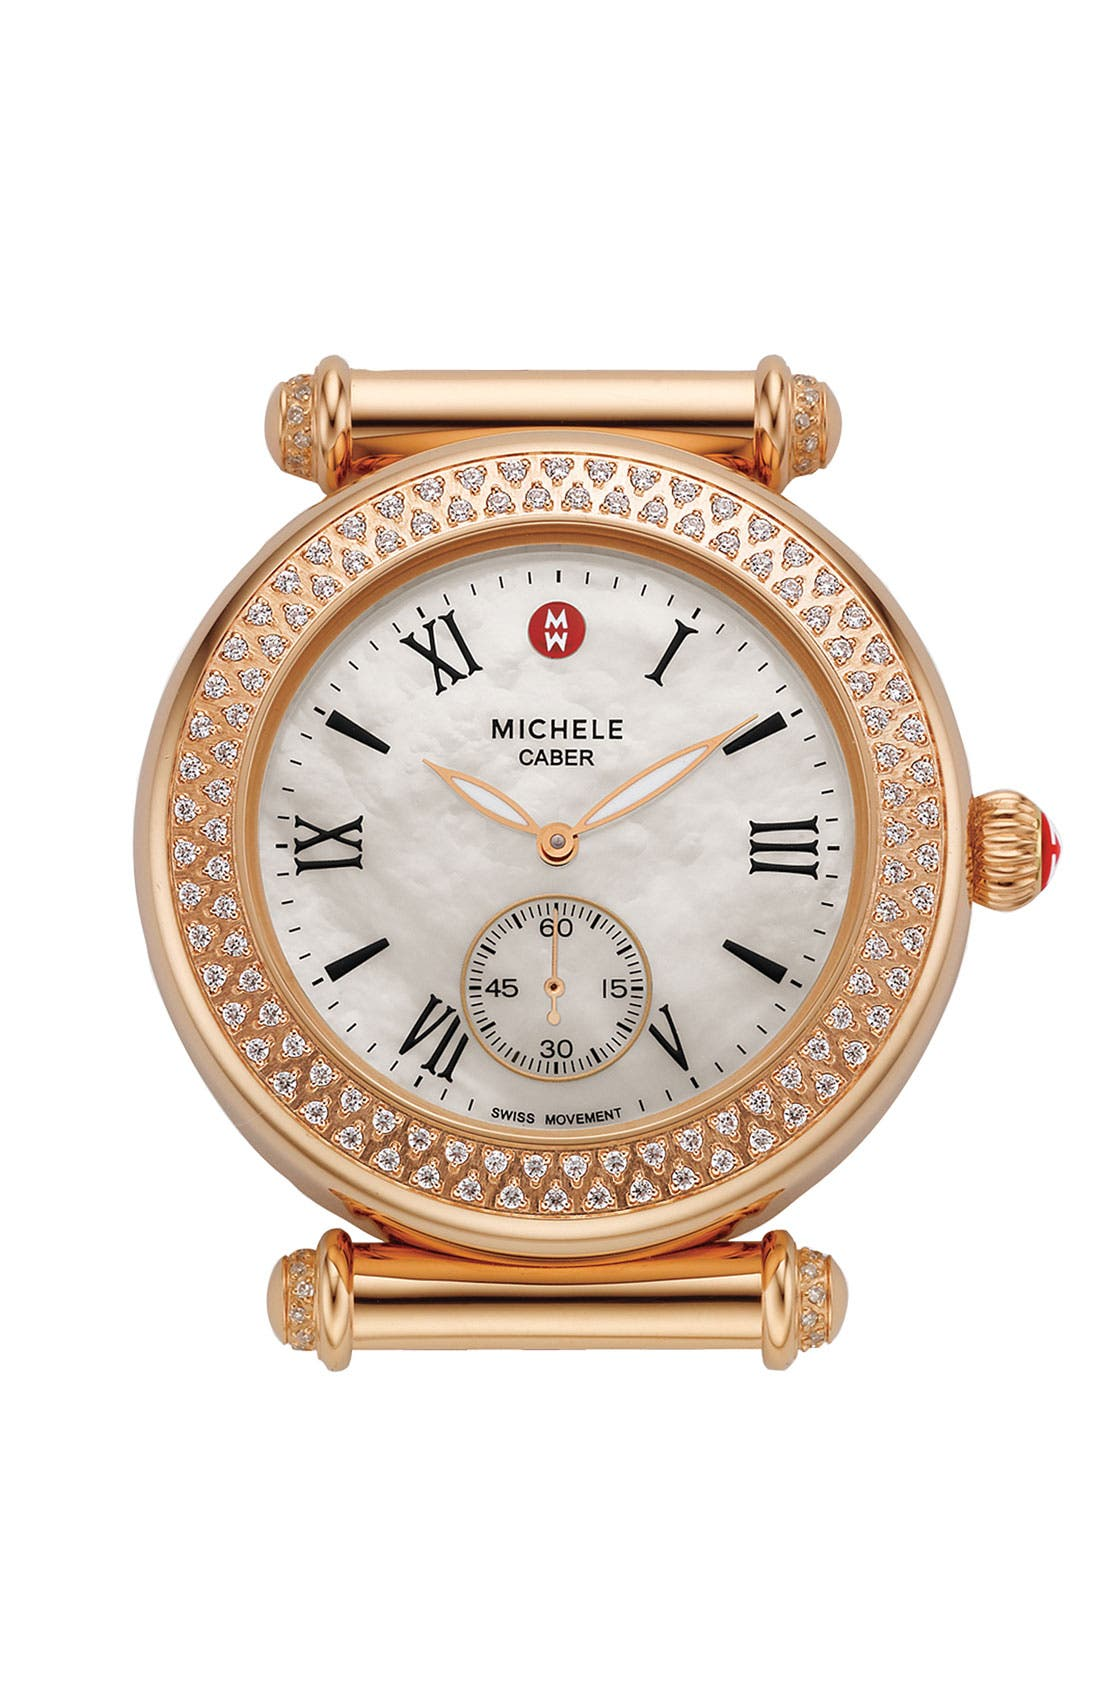 Alternate Image 1 Selected - MICHELE 'Caber' Diamond Rose Gold Watch Case, 38mm